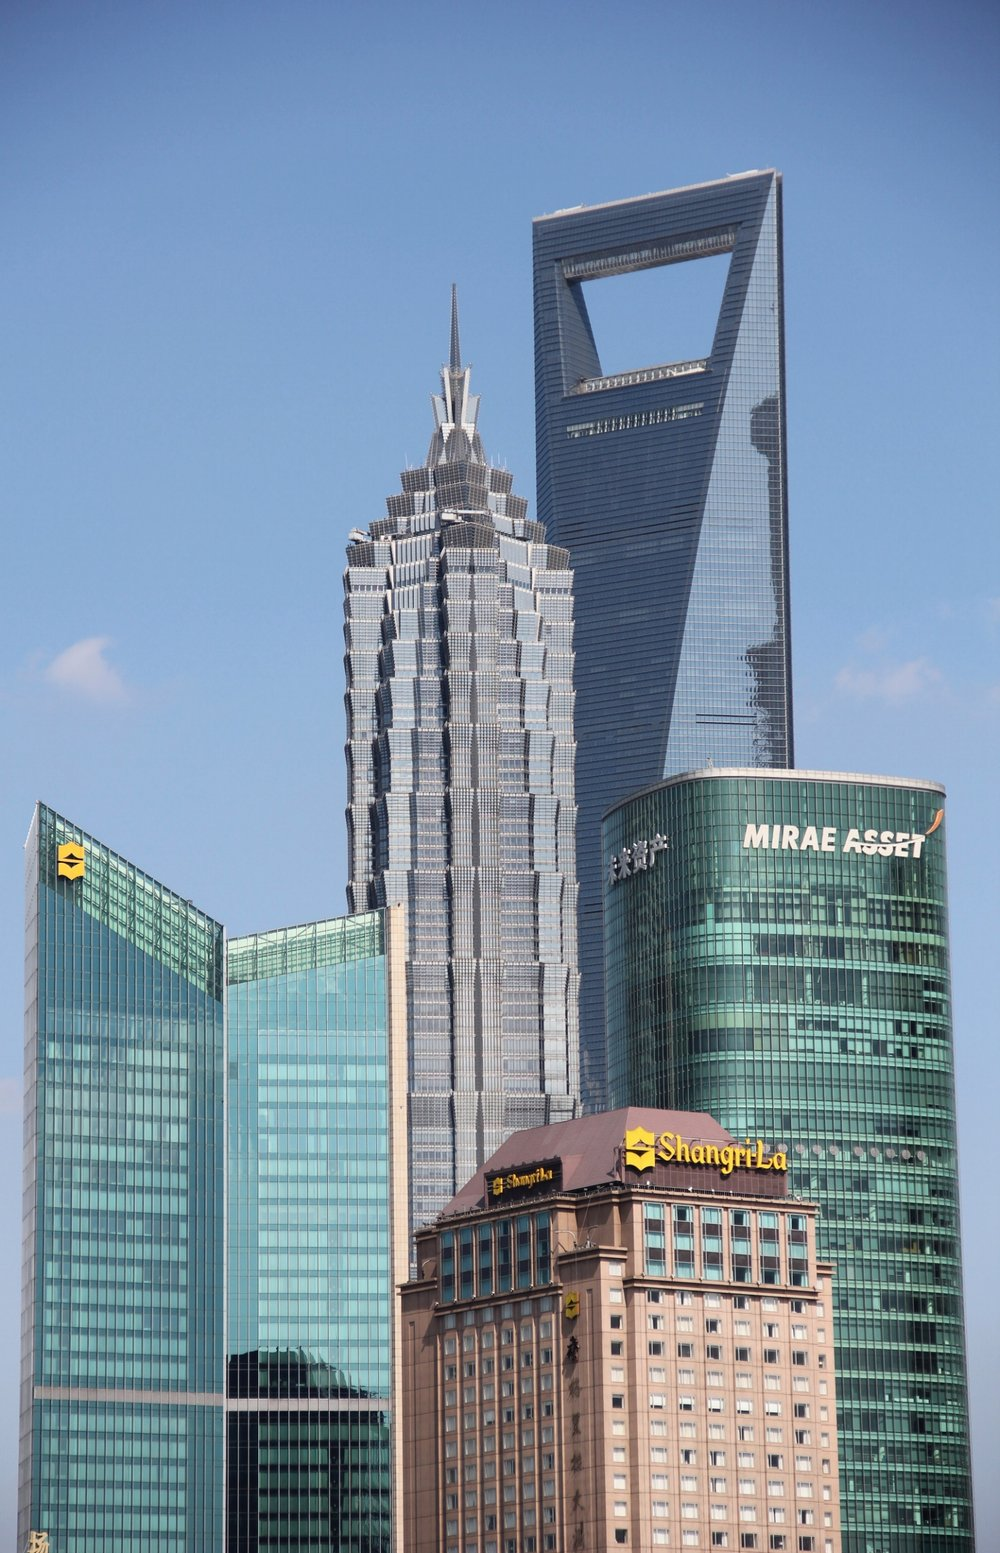 Here you're looking at Jin Mao Tower in the centre with the Shanghai World Financial Centre to its right.